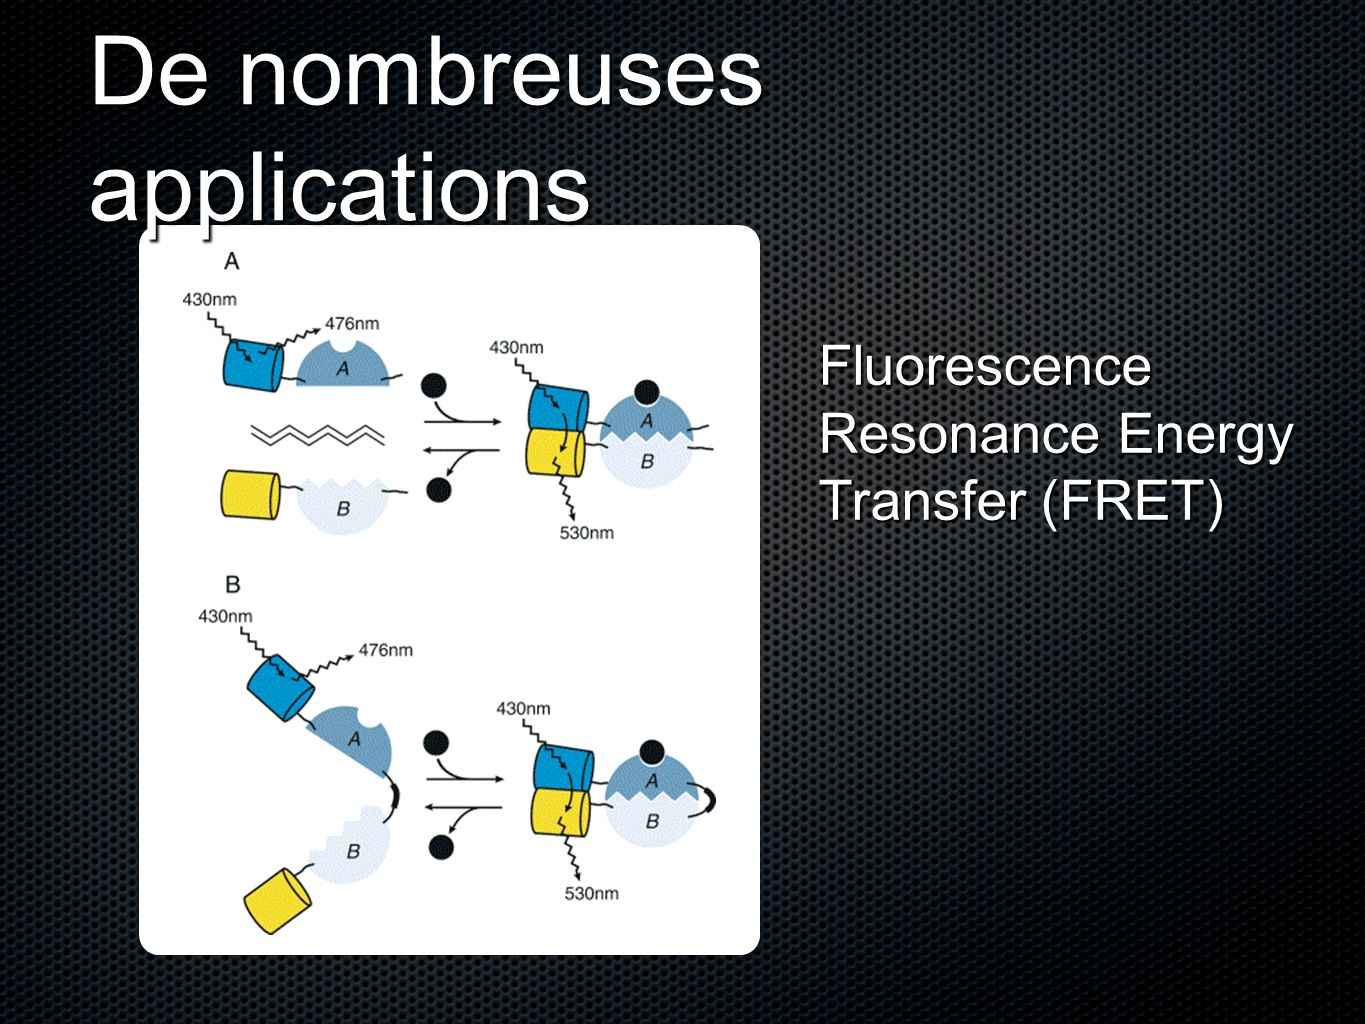 De nombreuses applications Fluorescence Resonance Energy Transfer (FRET)